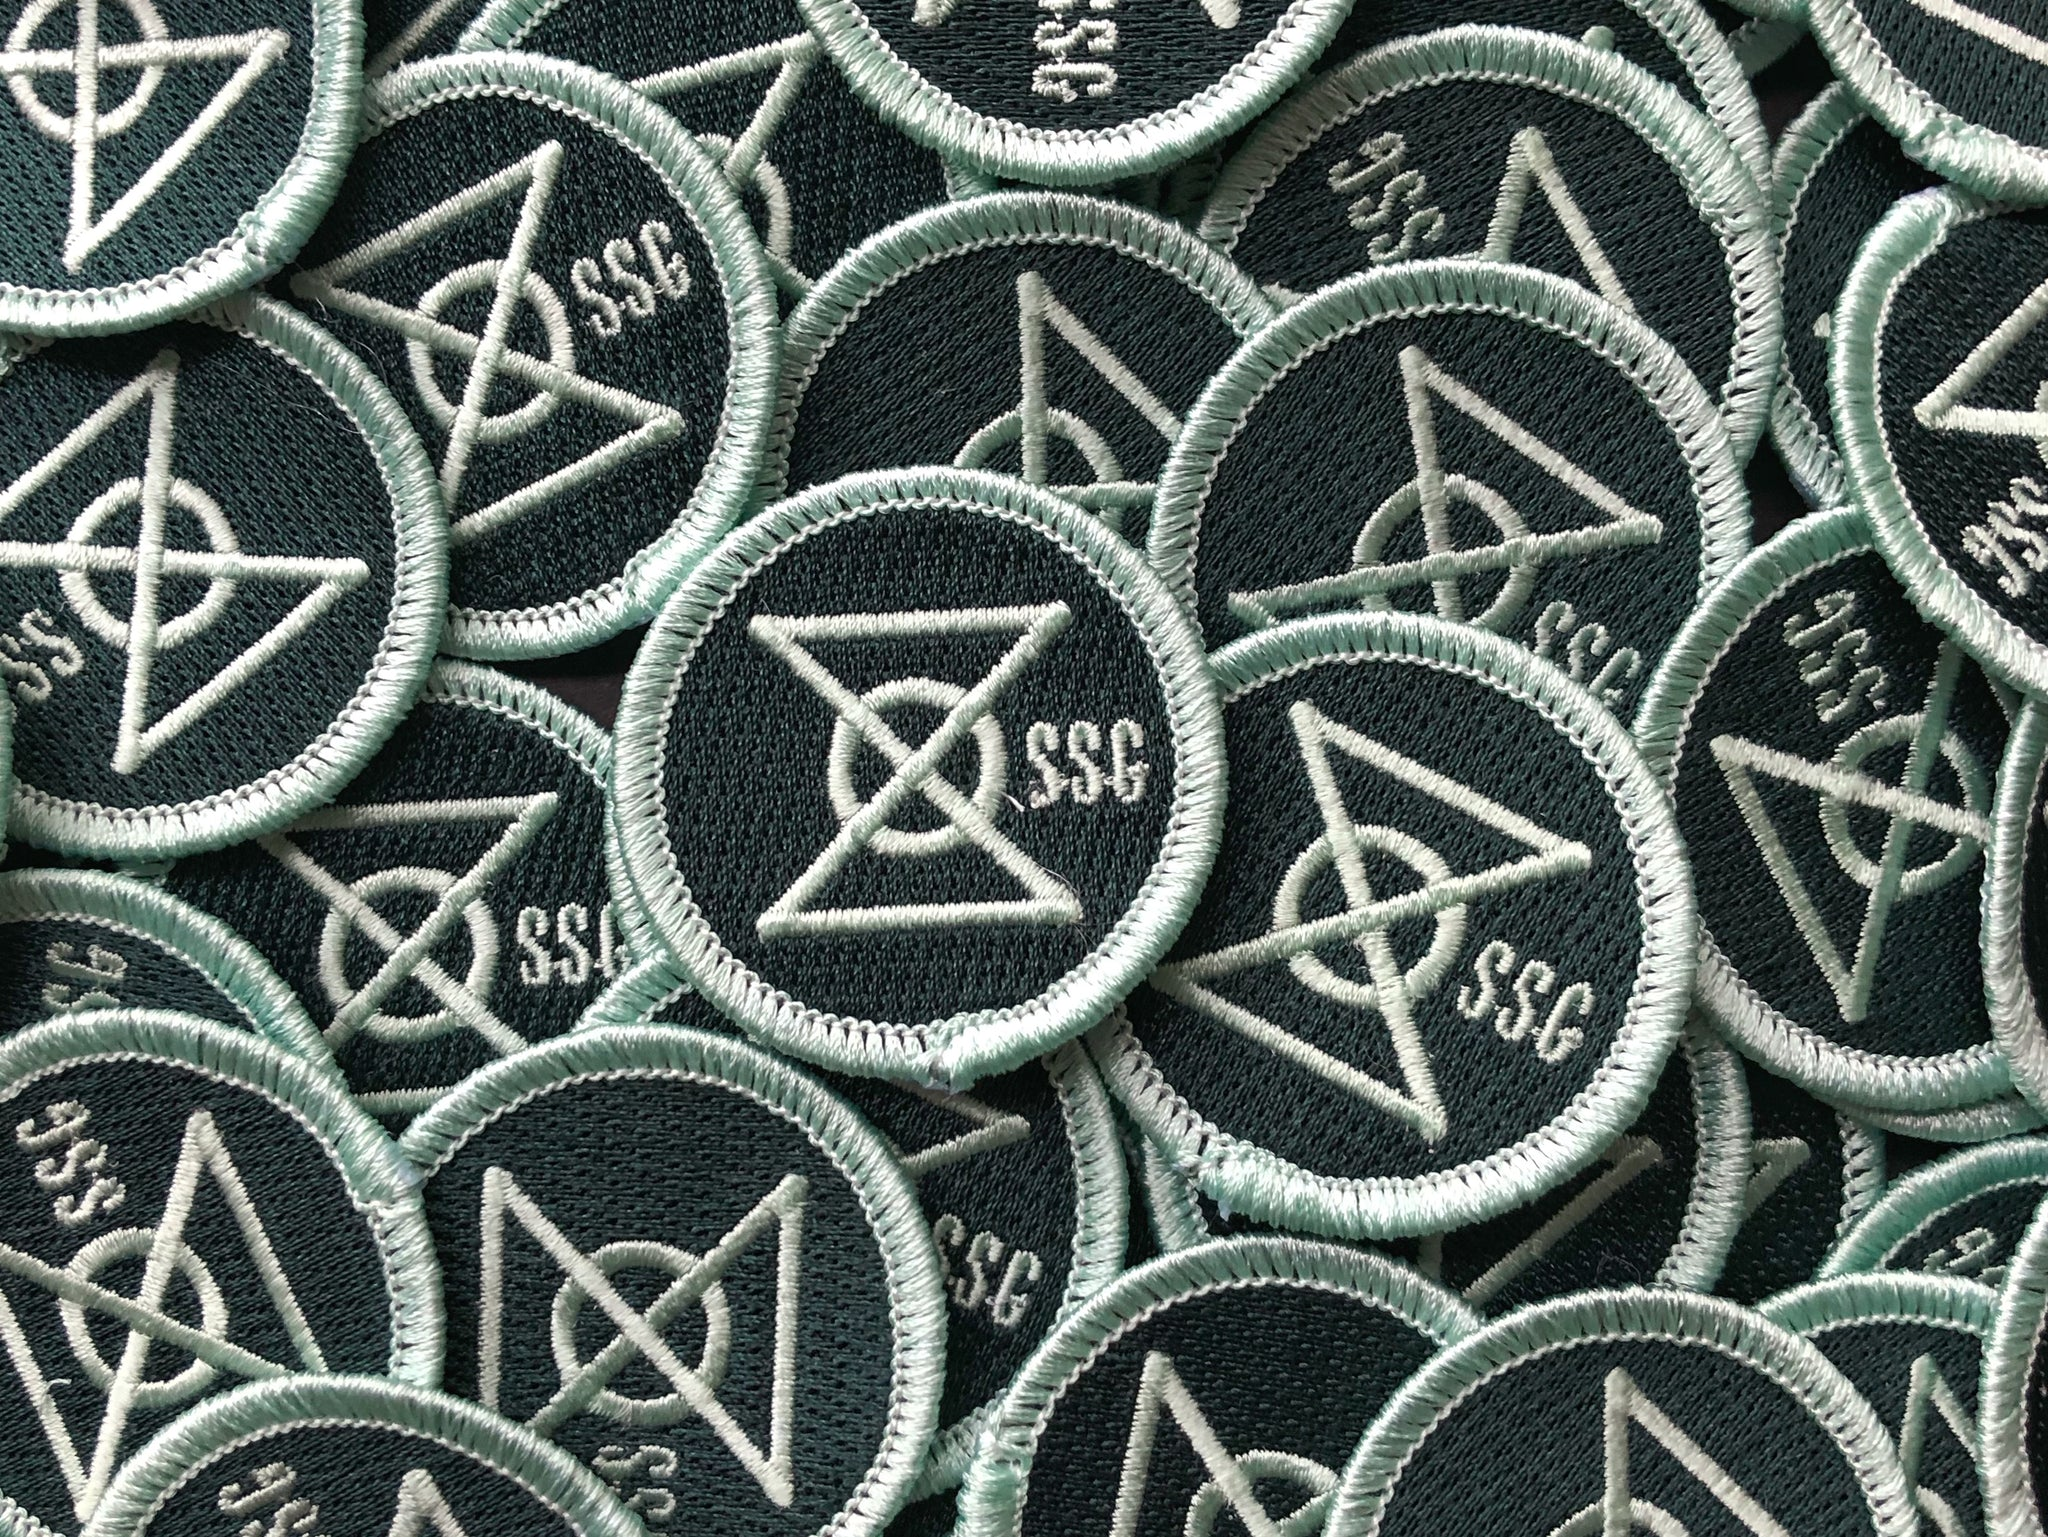 Secret Society Insignia Mini Merit Badge